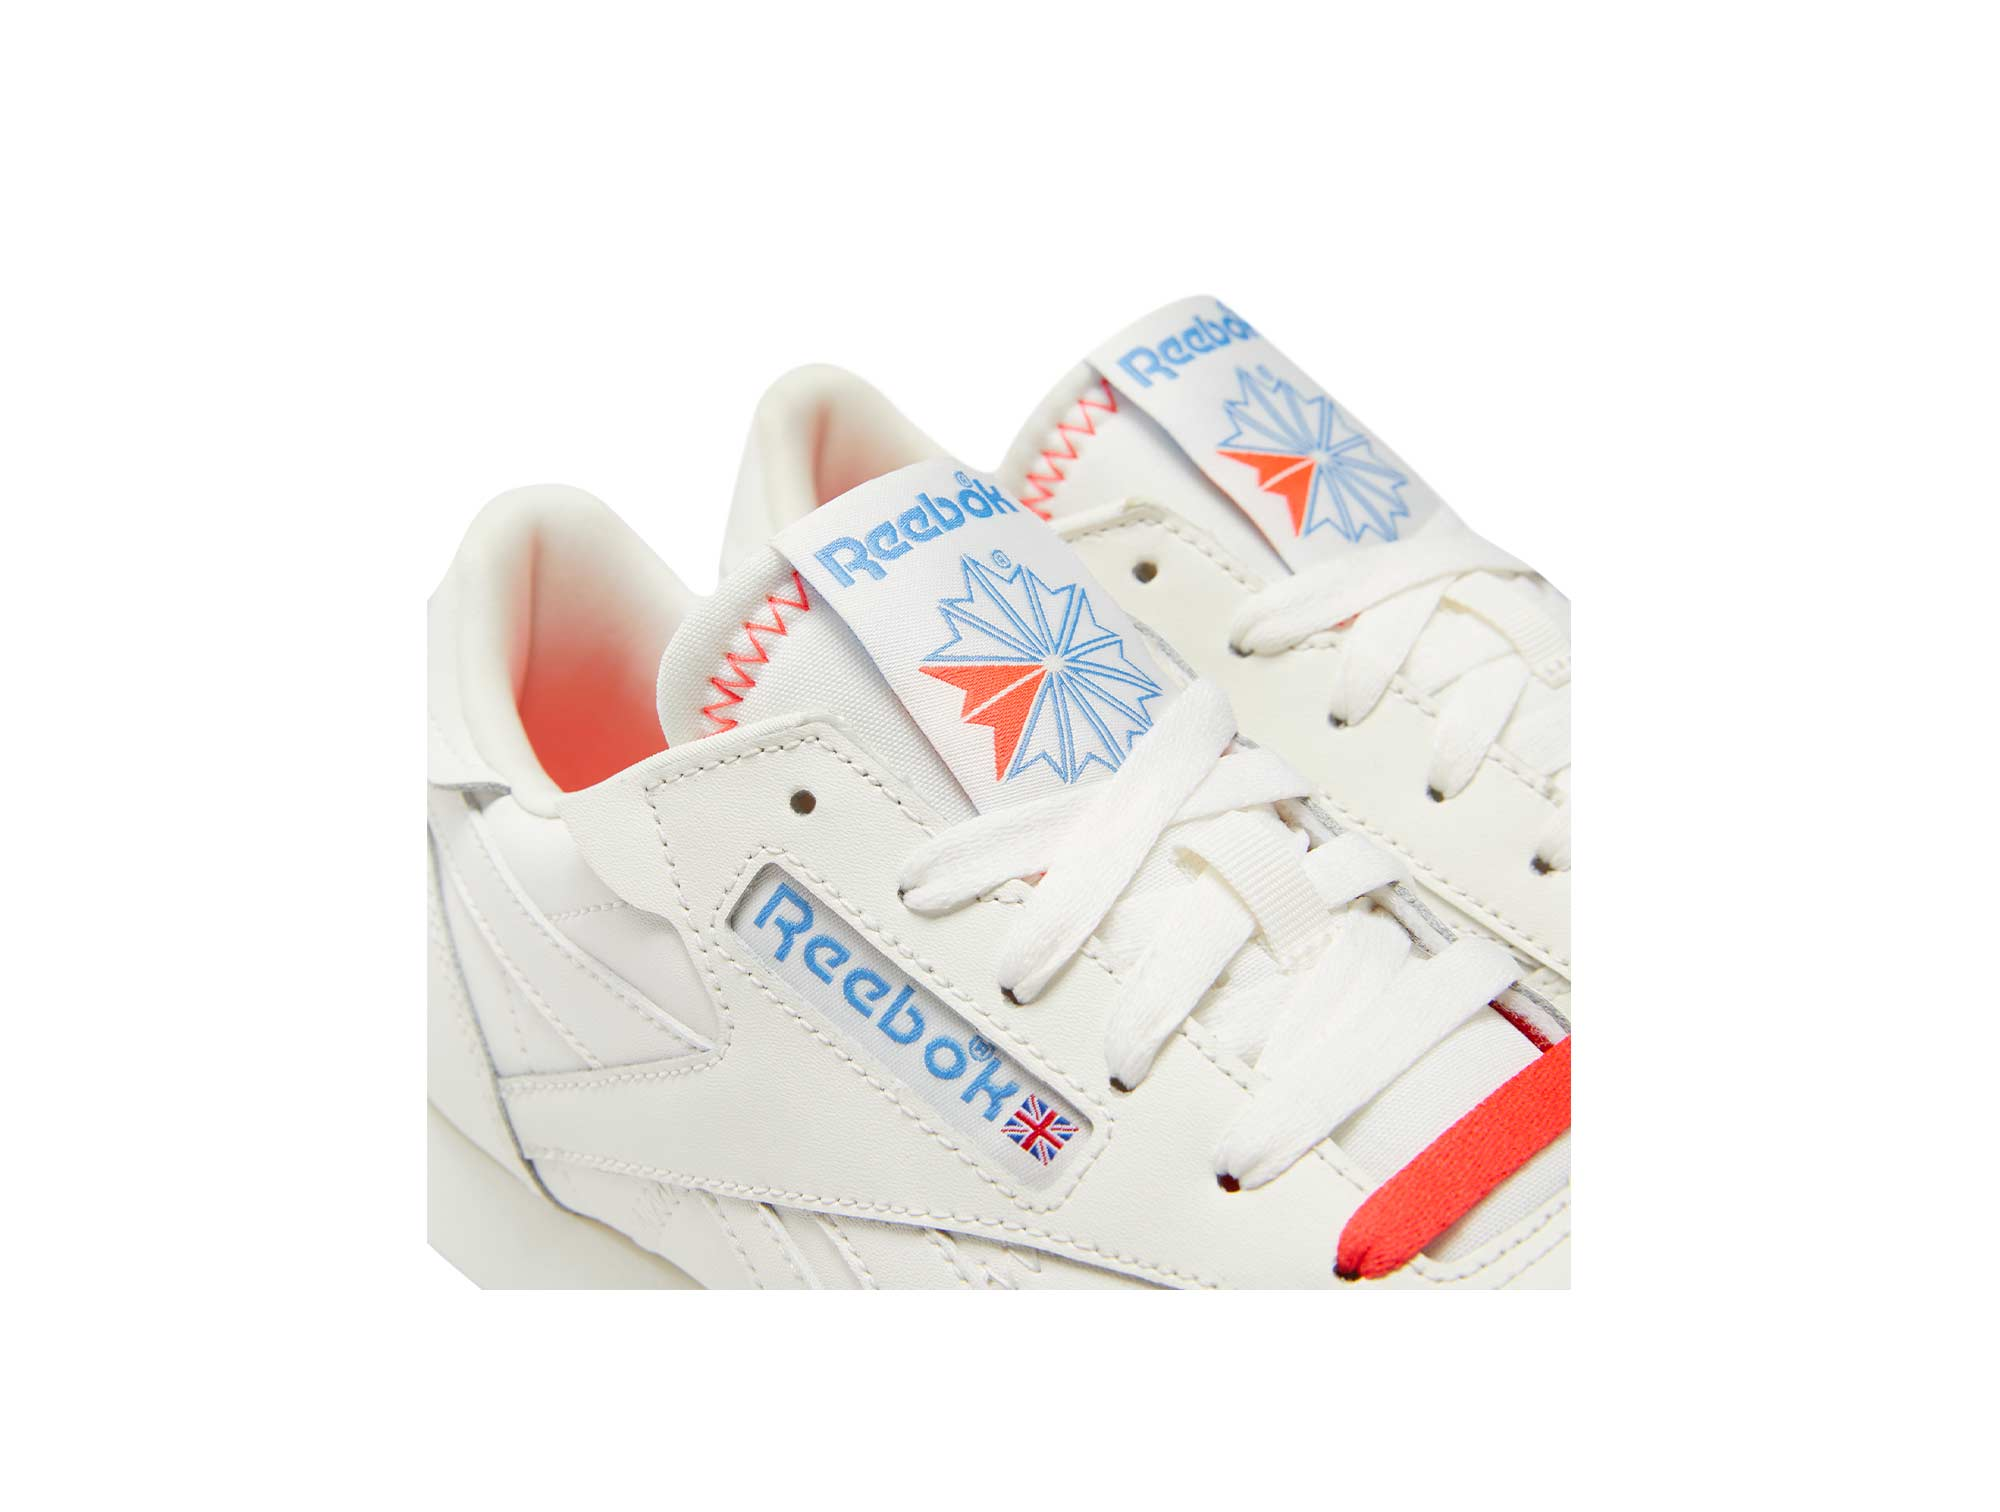 ZAPATILLA REEBOK CL LEATHER ITS A MANS WORLD MUJER BLANCO